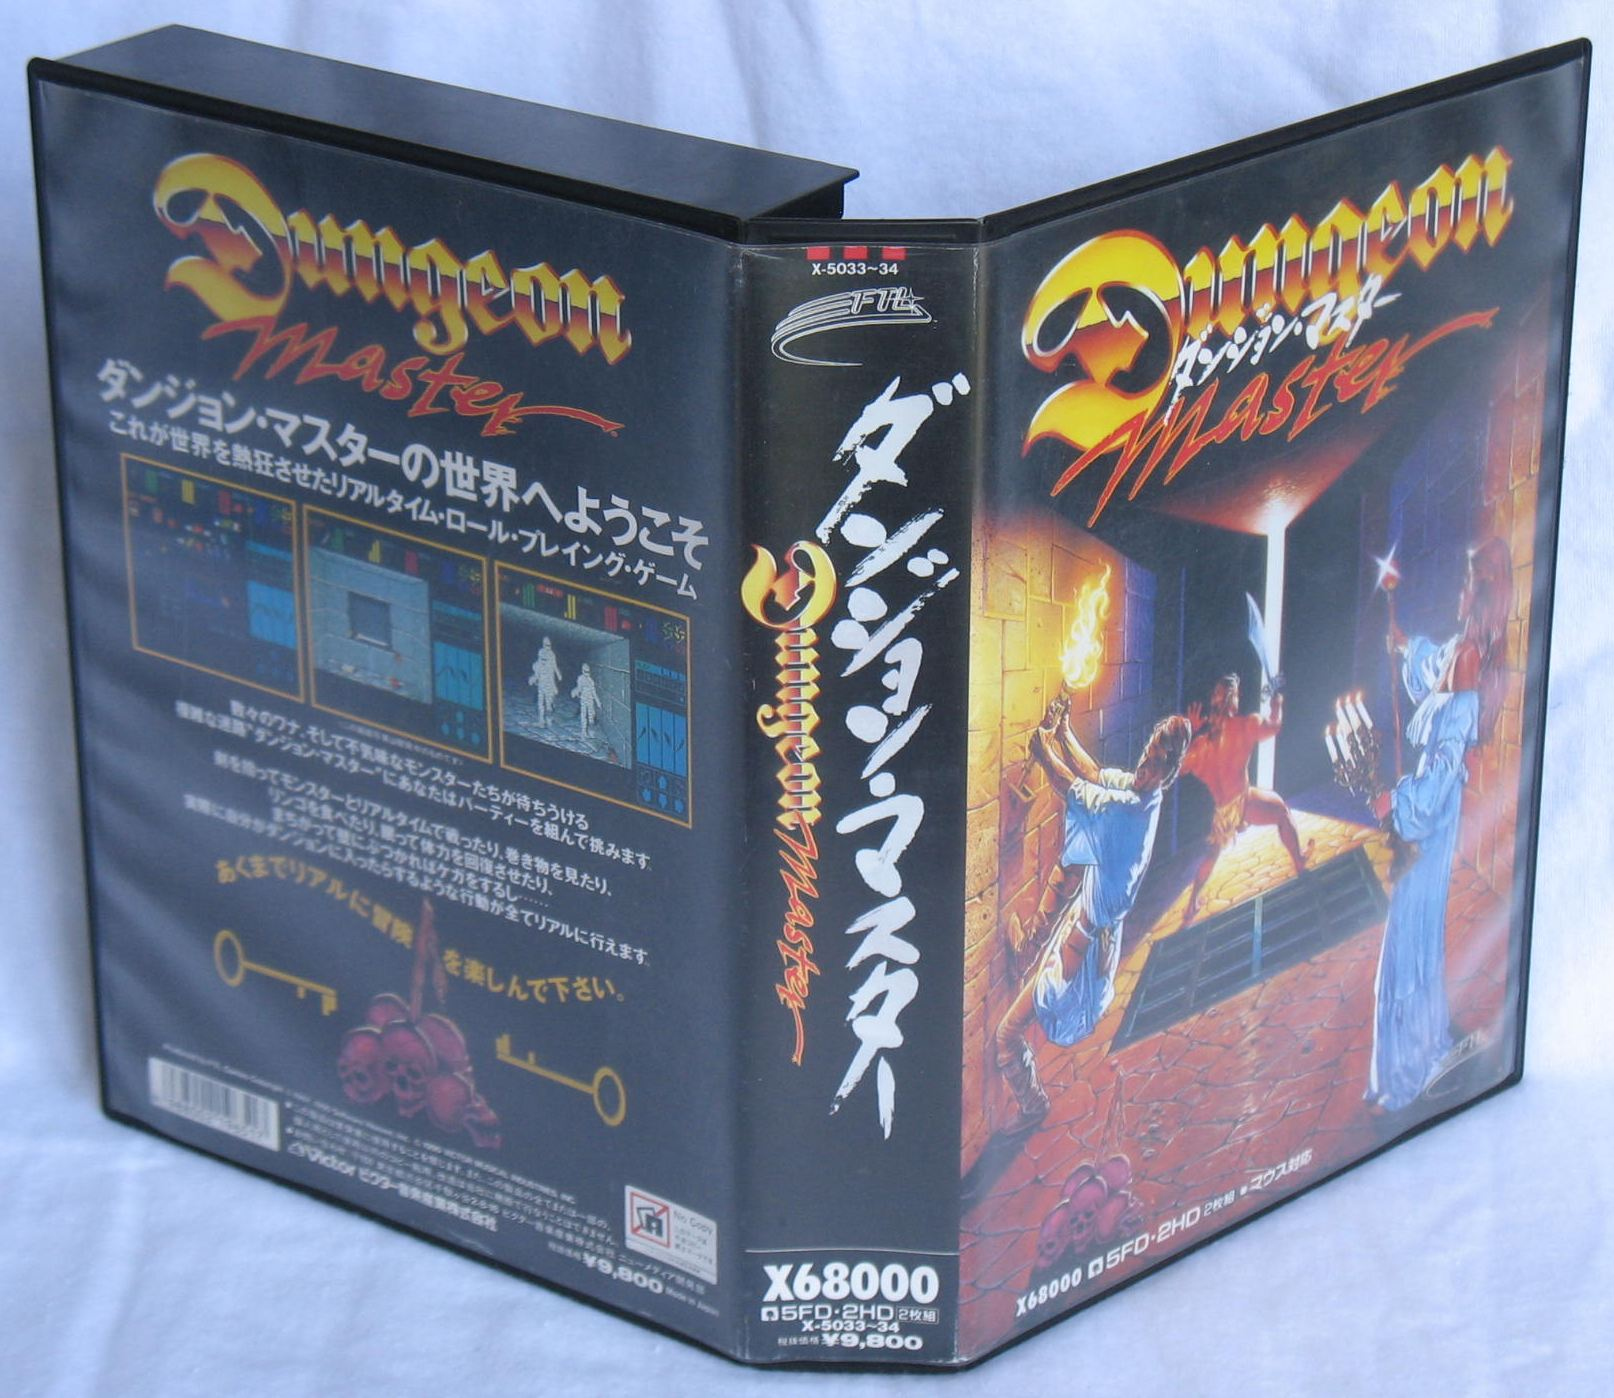 Game - Dungeon Master - JP - X68000 - Box - Front Back Left Top - Photo